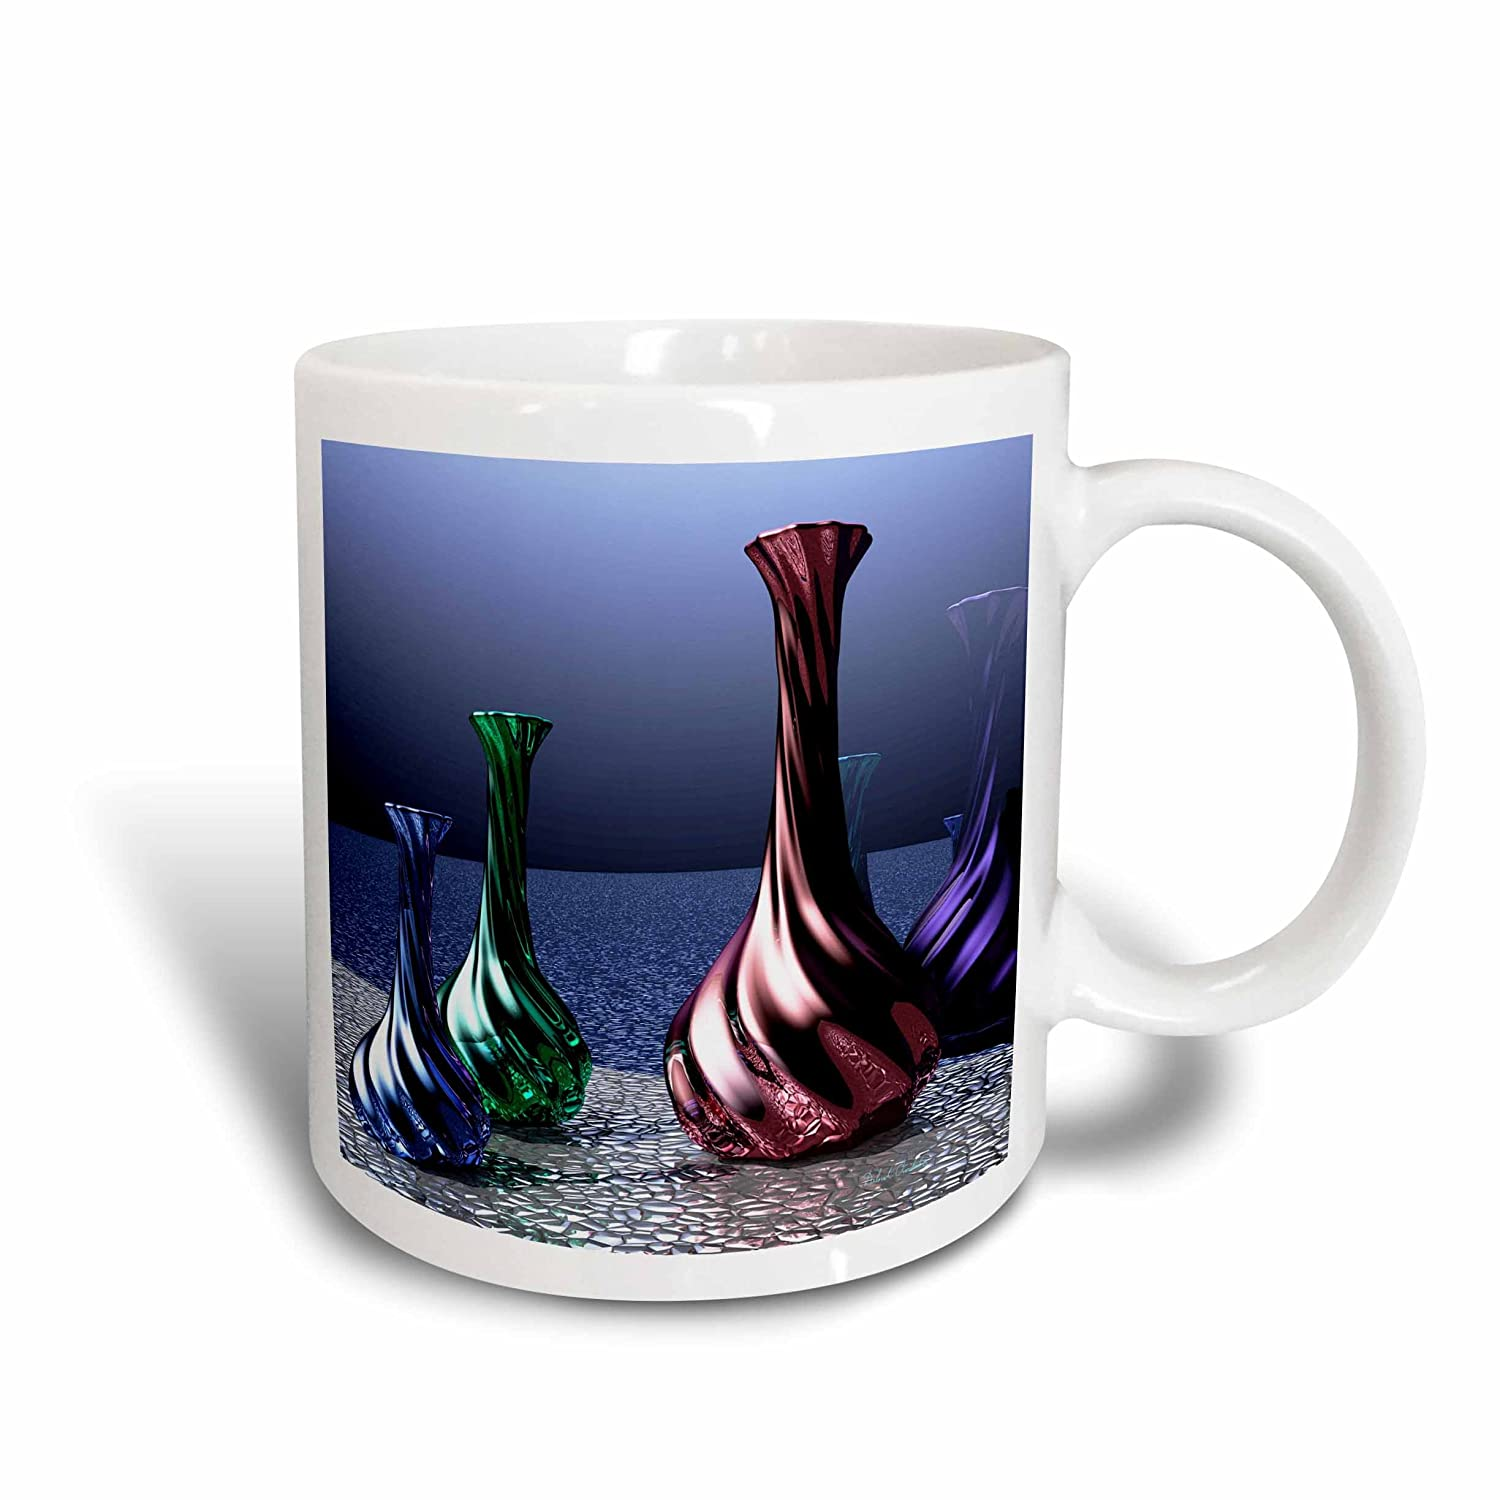 3dRose 11627/_1 Elegant Glass Carafes Shining in hues in Blue Green and red-Ceramic Mug 11 oz Multicolored